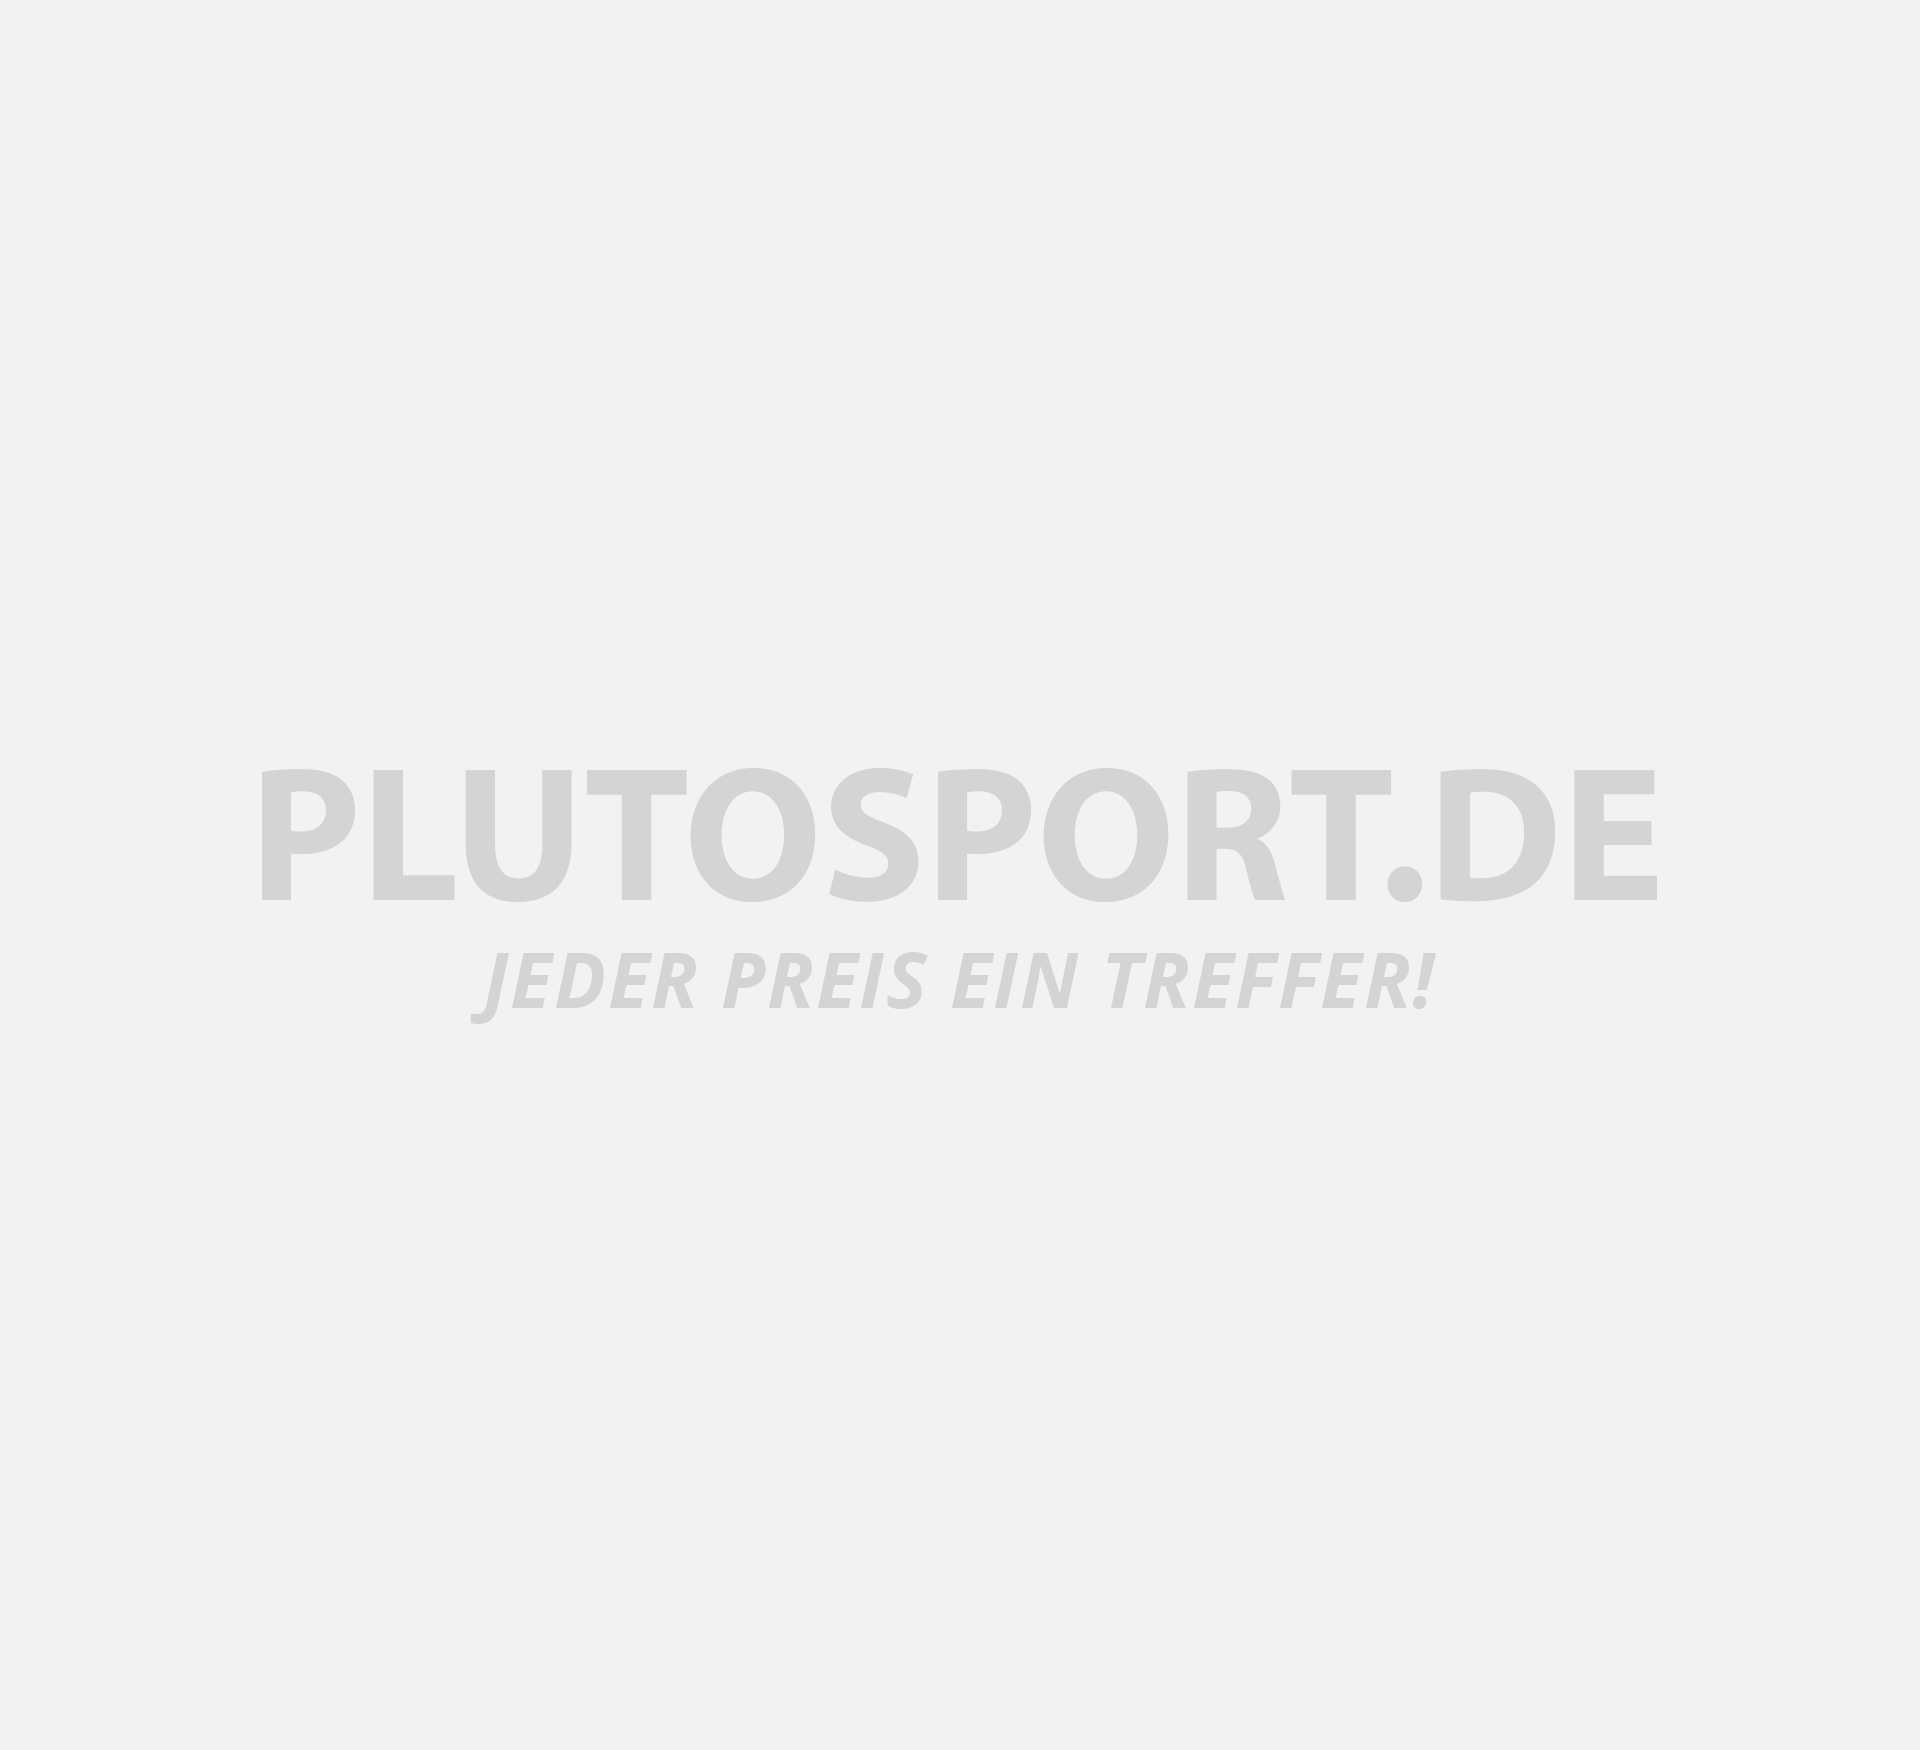 Jack & Jones Intelligence Aruba Schwimmshort Kinder